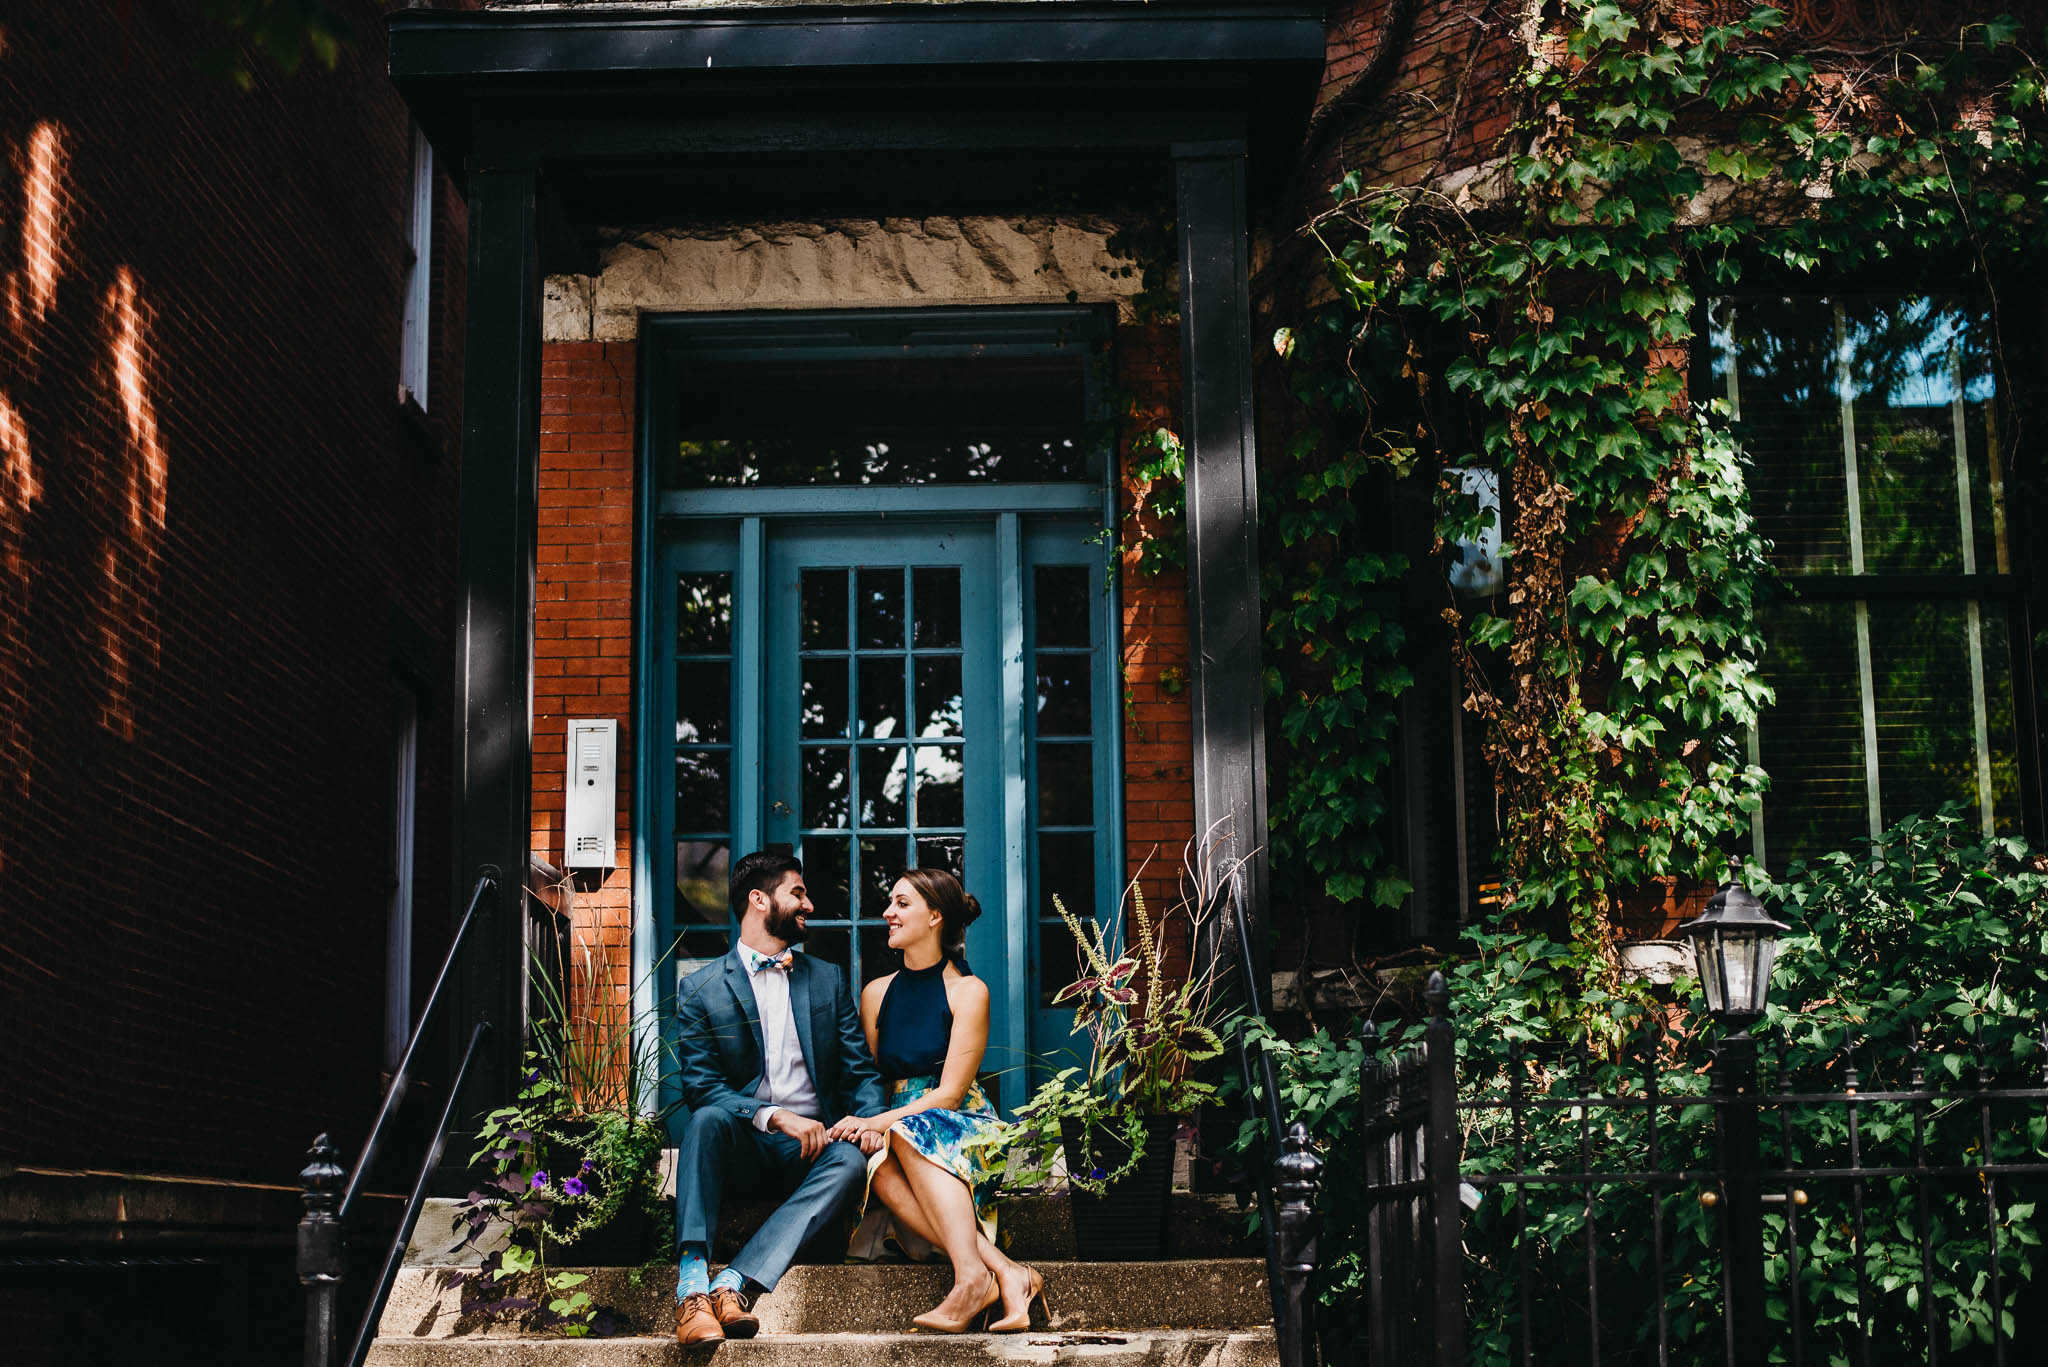 A couple dressed up for photos sitting on steps